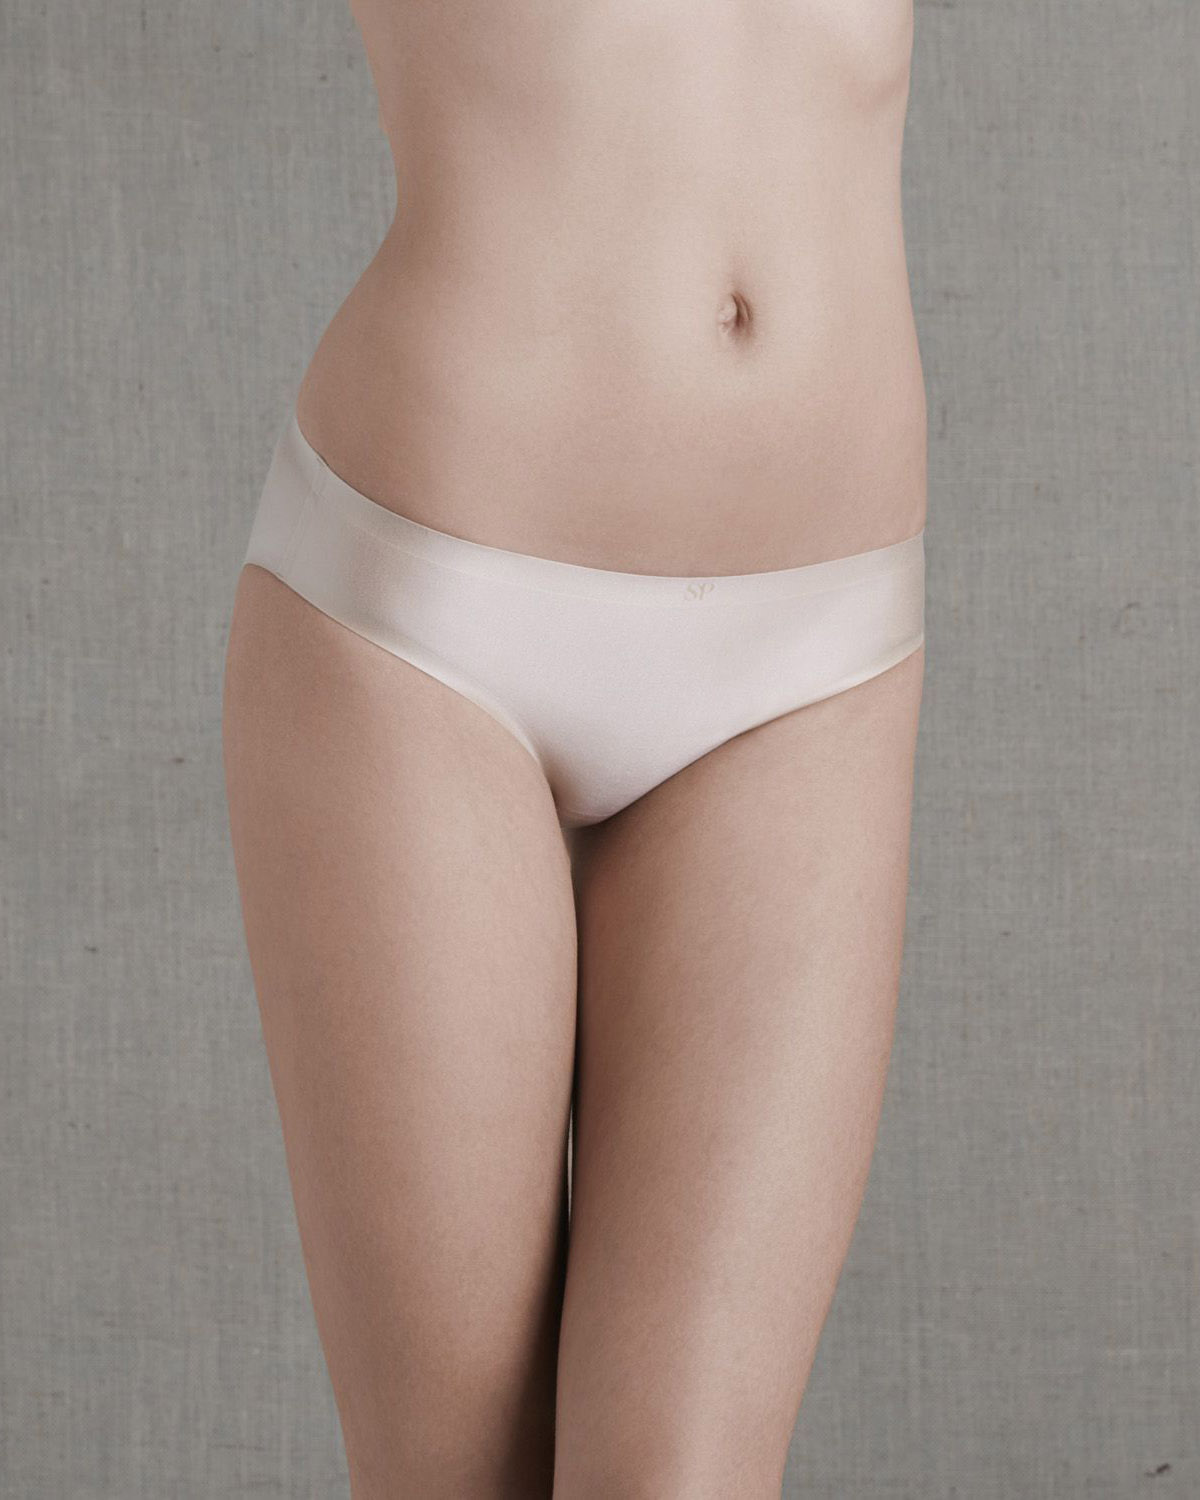 Simone Perele Invisi'Bulle Brief (Nude) 1 фото